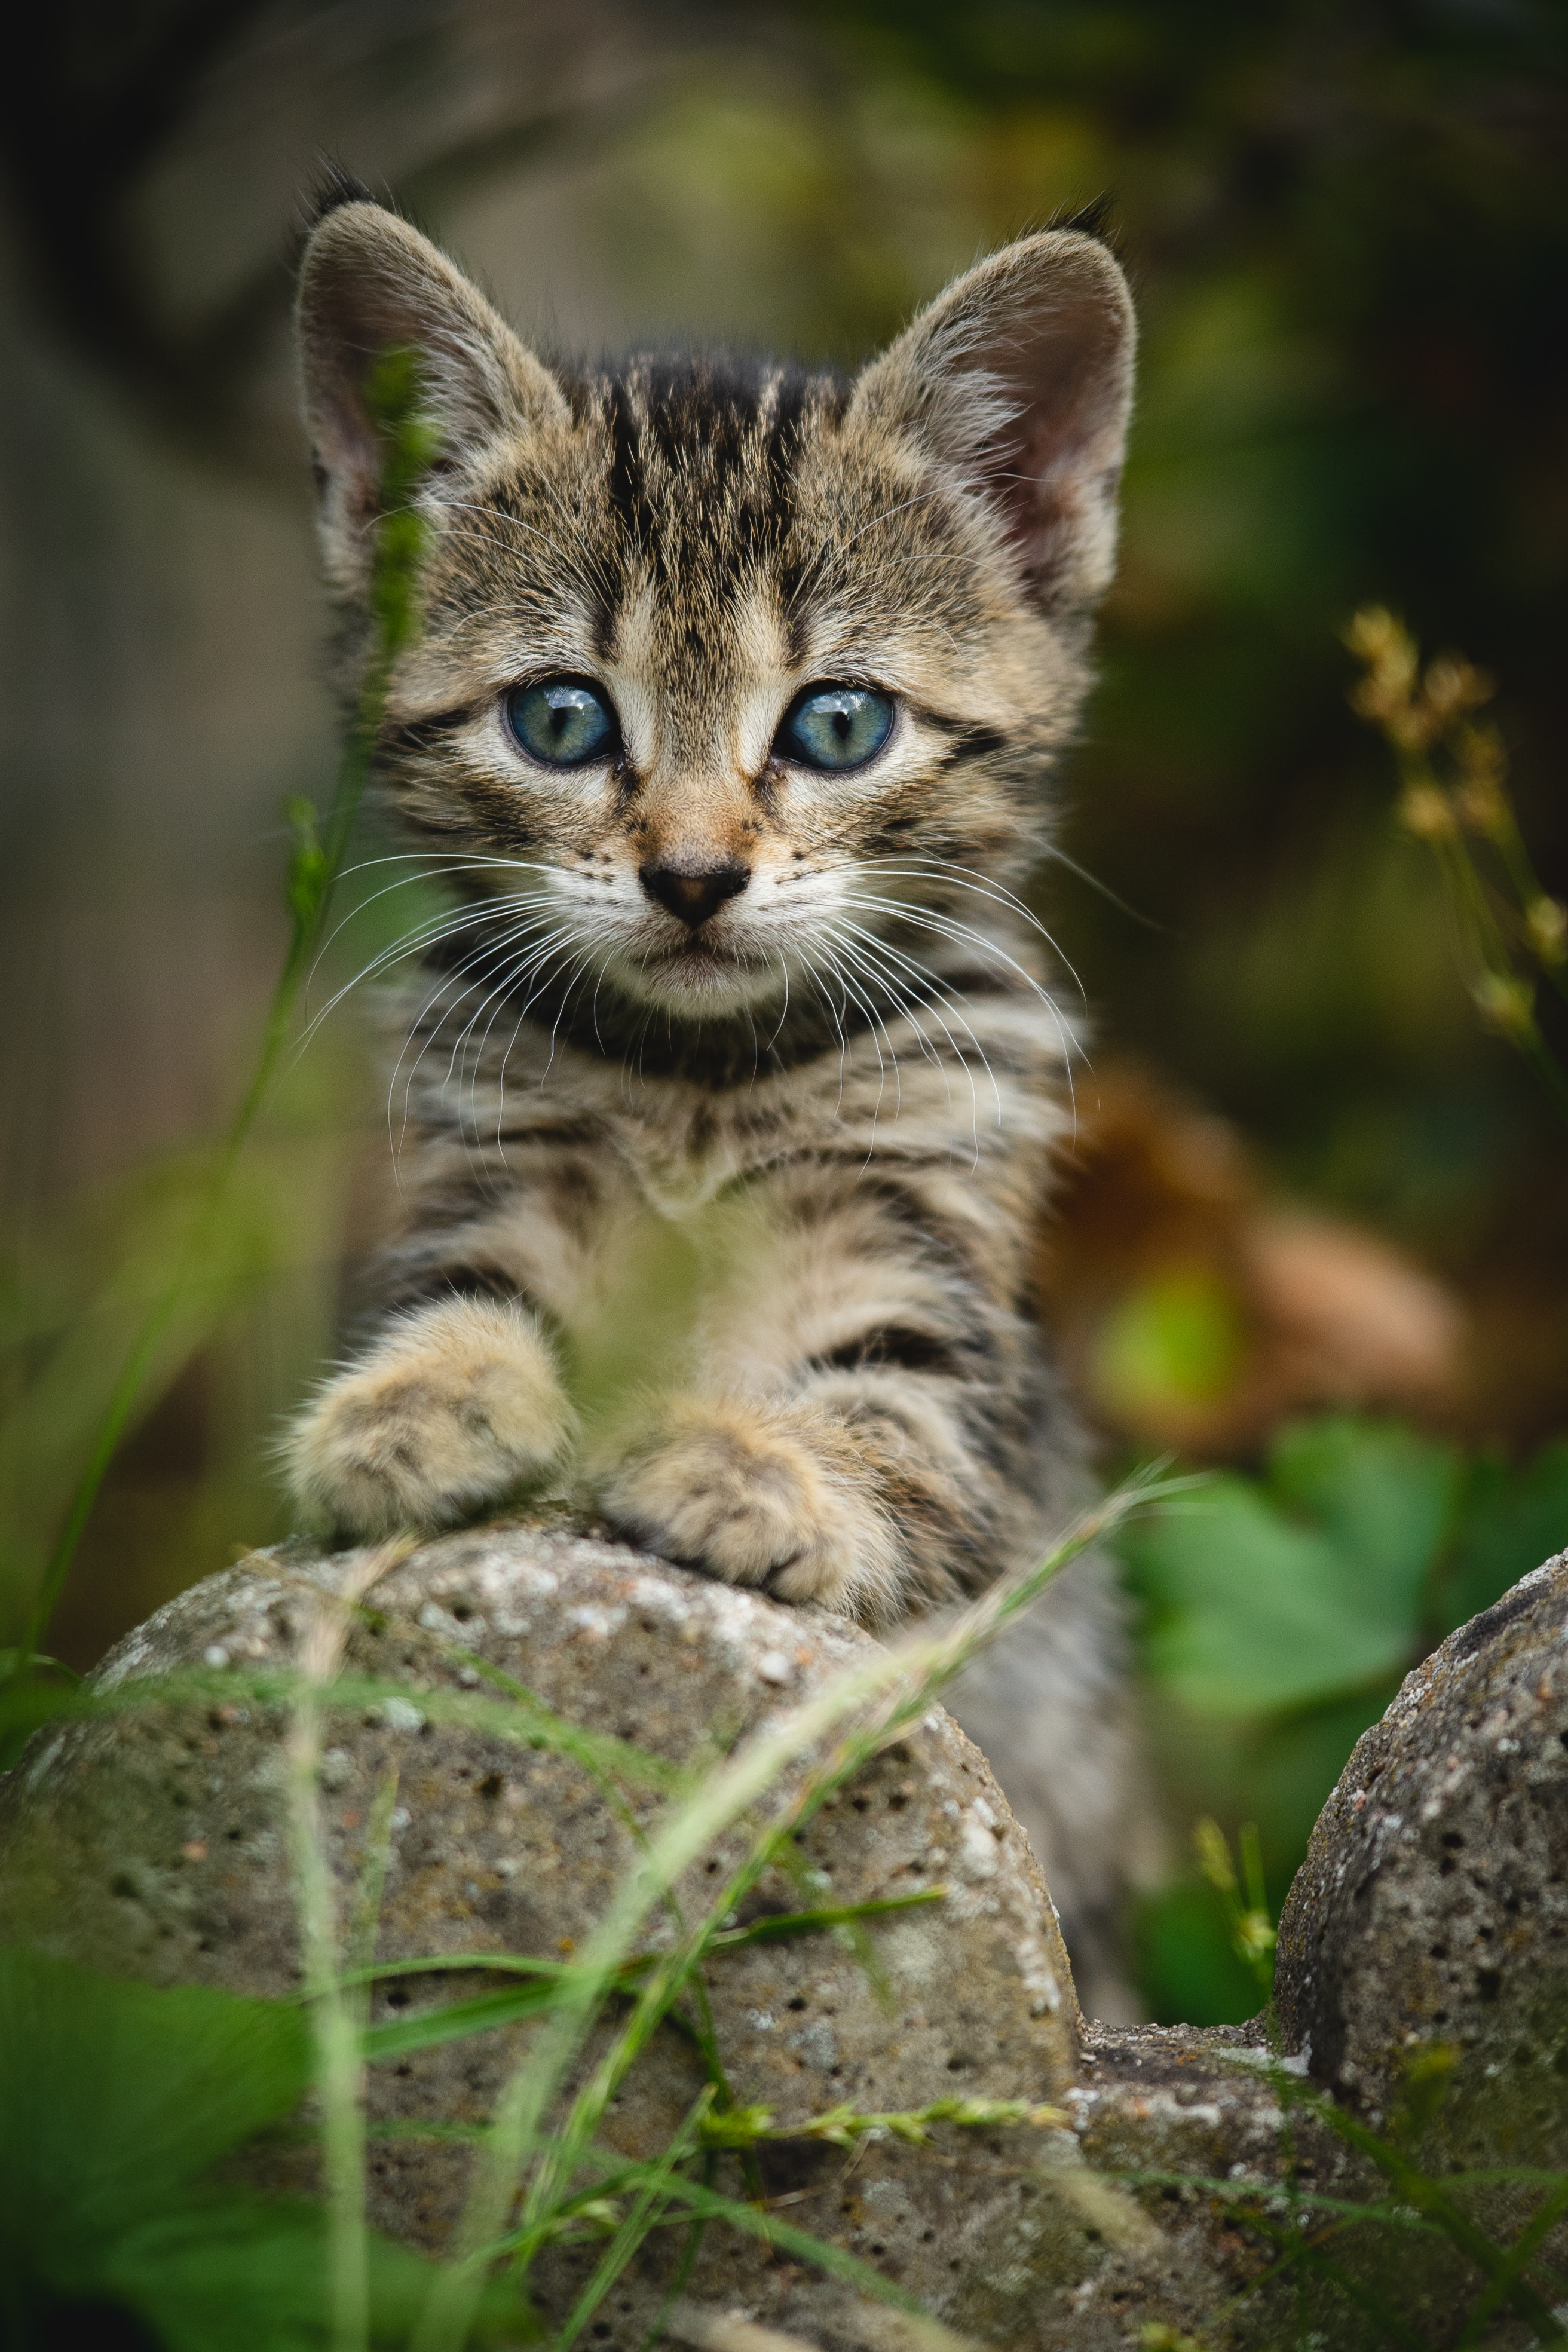 126460 download wallpaper Cat, Animals, Kitty, Kitten, Striped, Sight, Opinion, Nice, Sweetheart screensavers and pictures for free